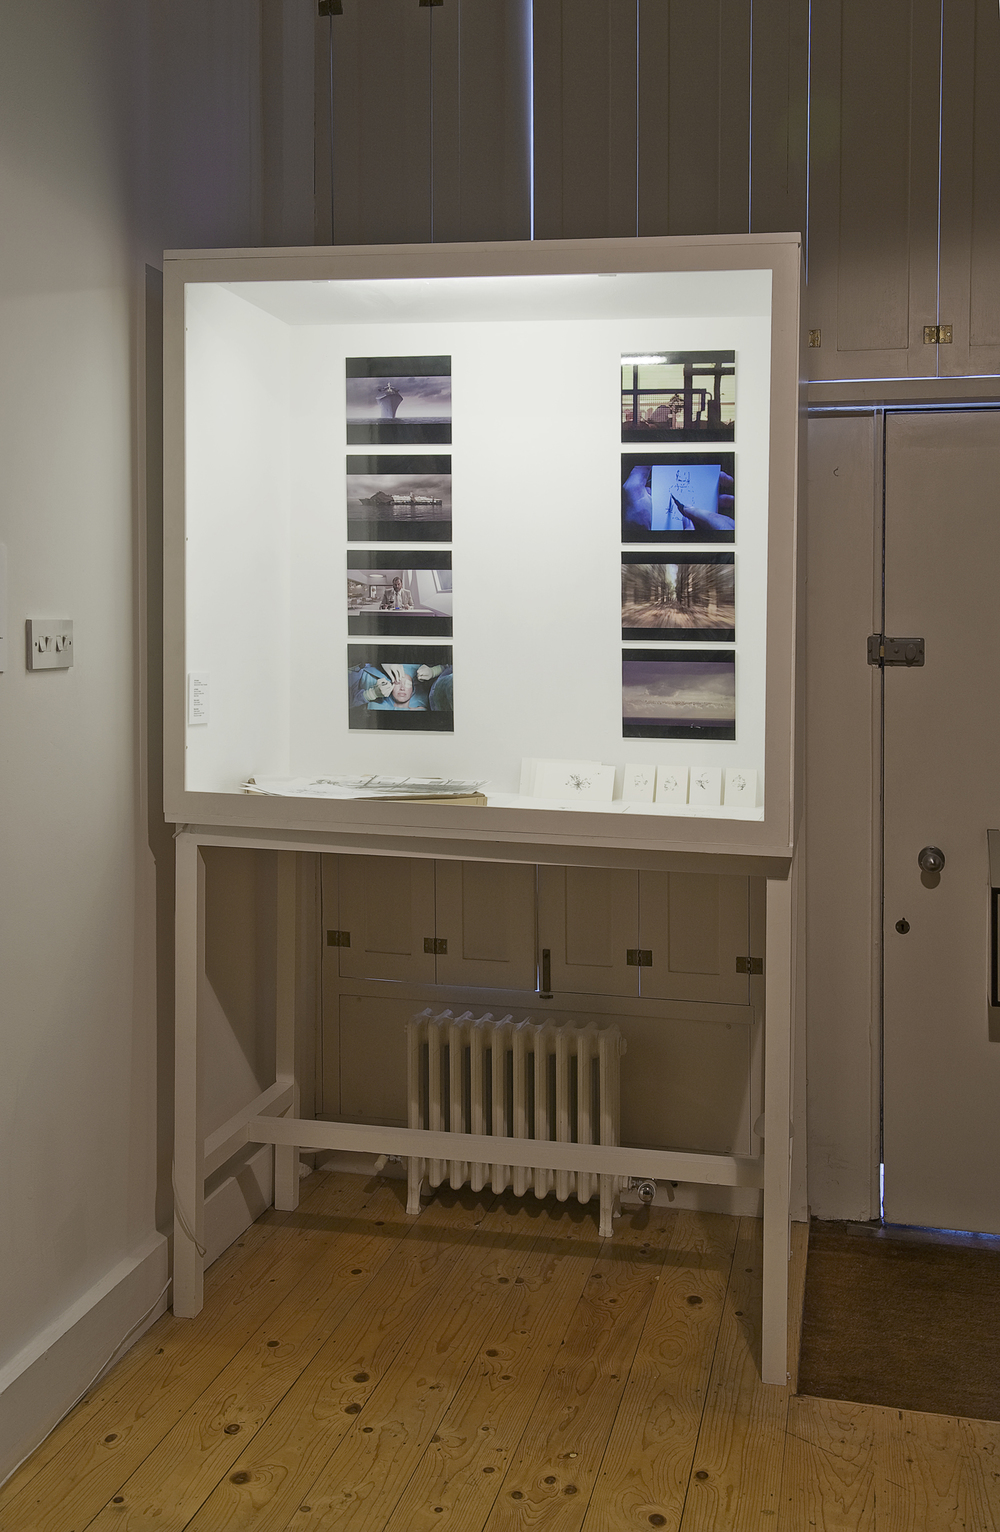 Cabinet 1 showing Hand Op De Beeck and Dryden Goodwin